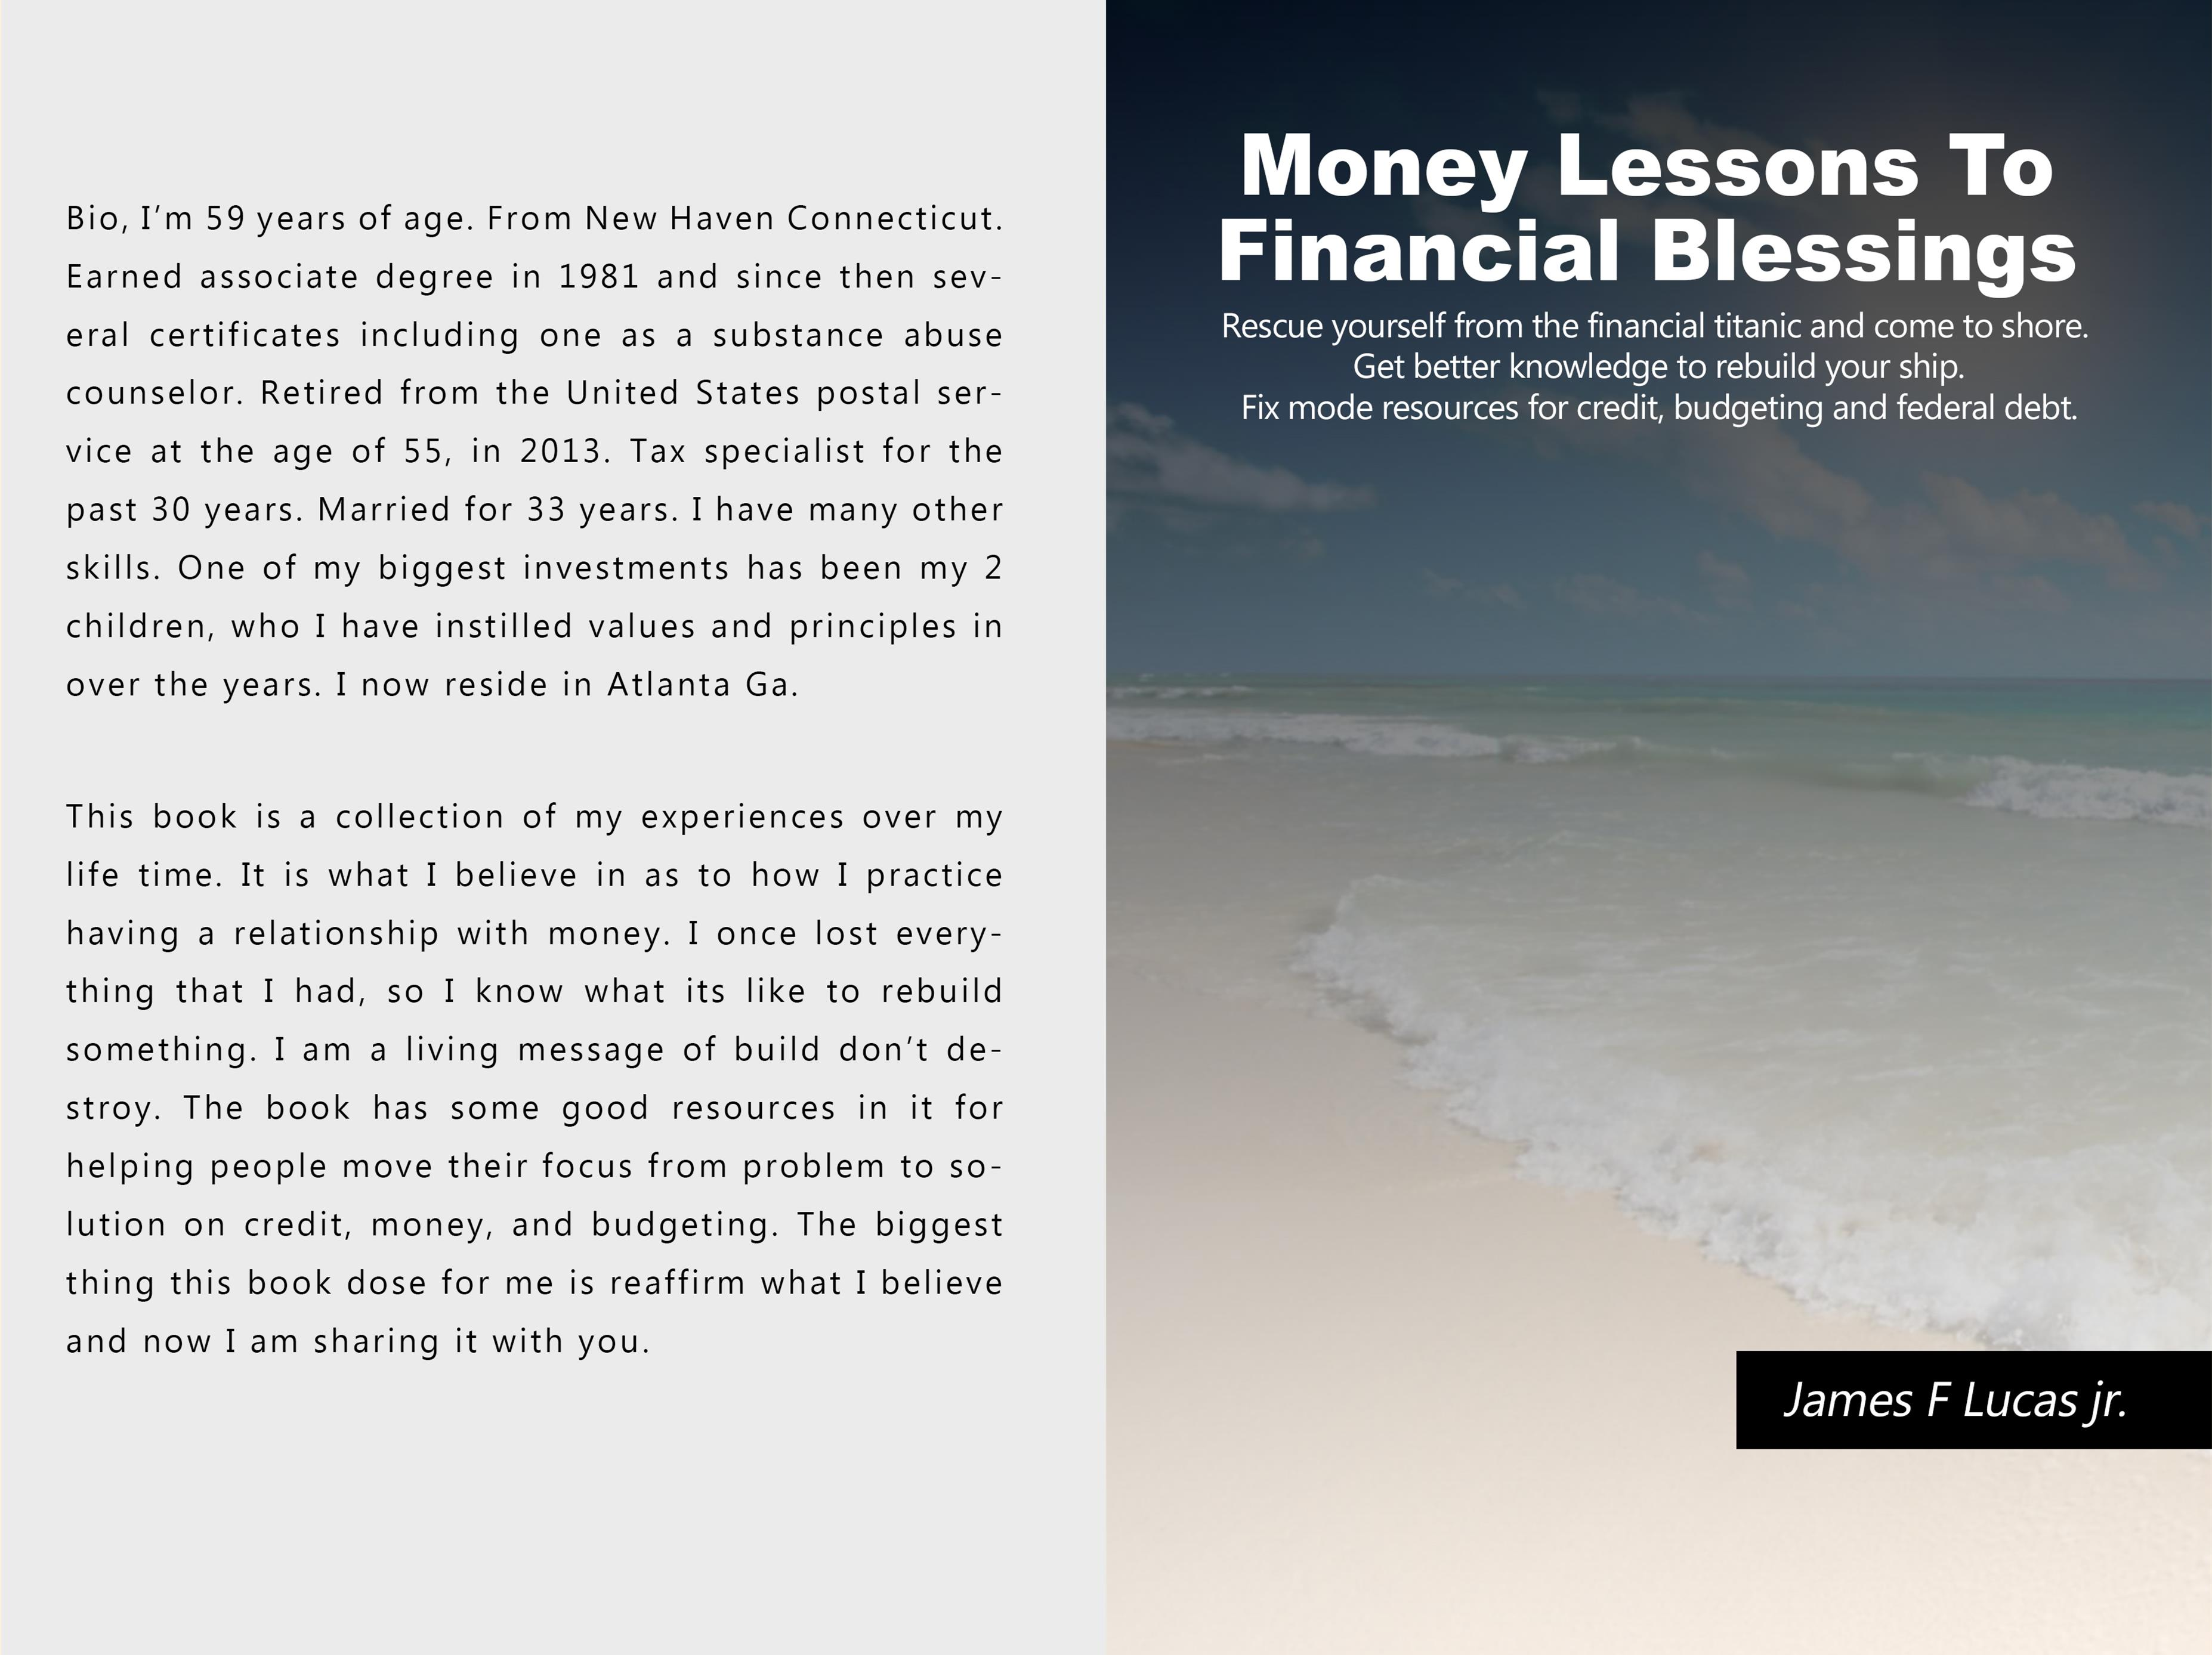 Money Lessons To Financial Blessings cover image